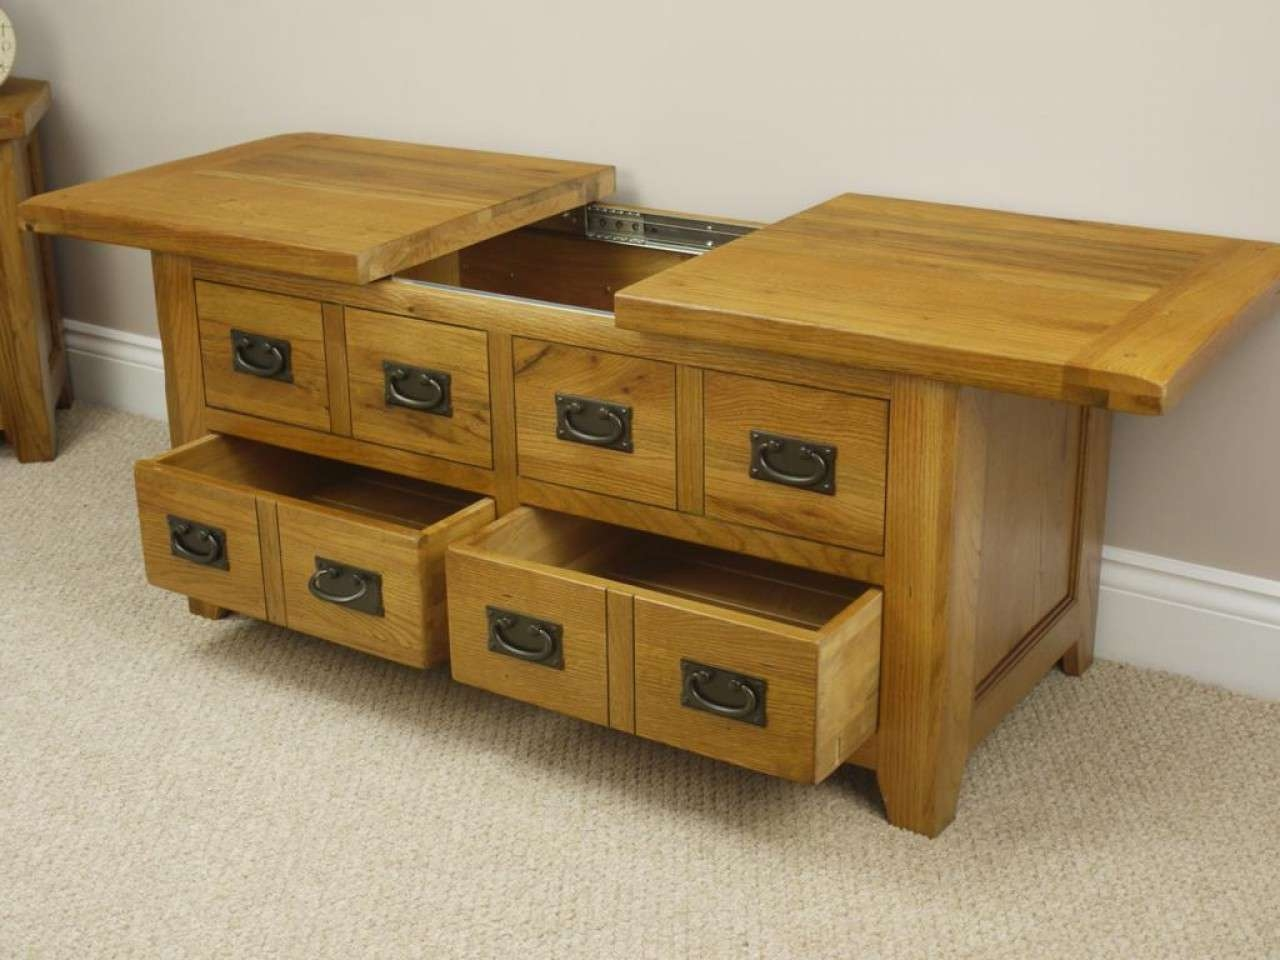 Coffee Tables : Large Oak Coffee Table With Storage Tables Square Intended For 2018 Oak Coffee Table With Storage (View 2 of 20)